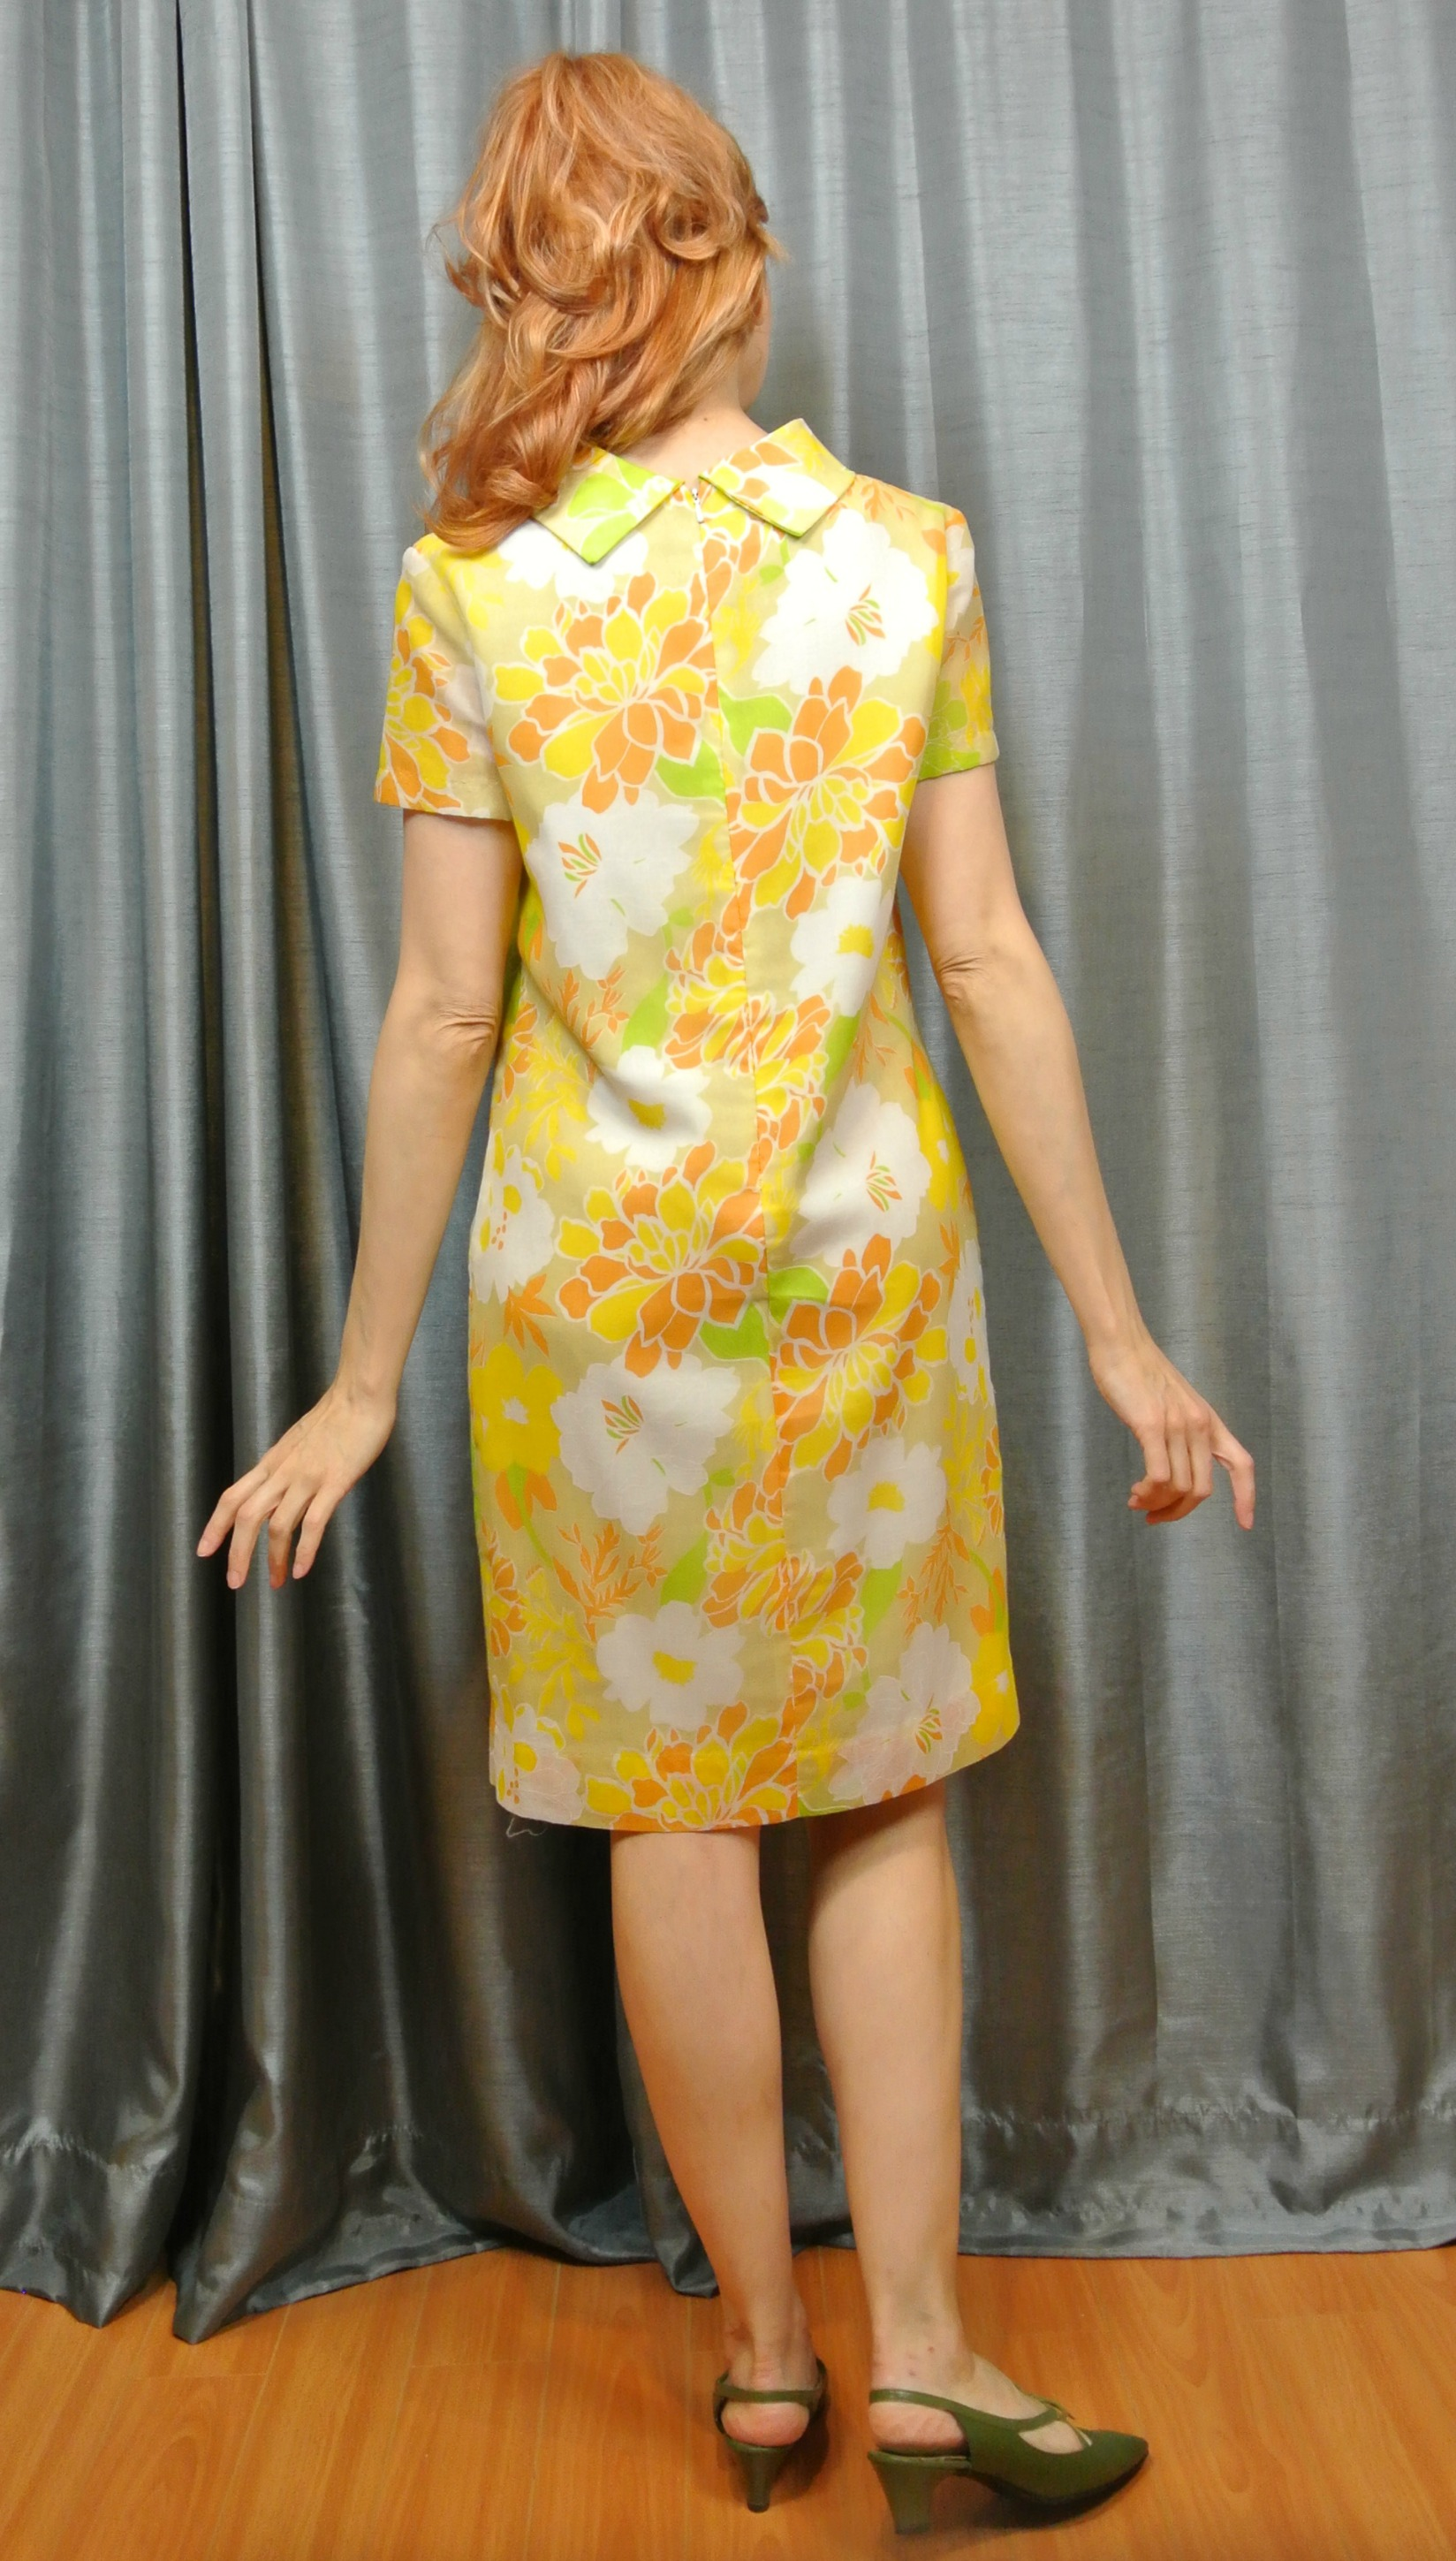 Stiletto City Store - Floral 1960s Vintage Dress Back View